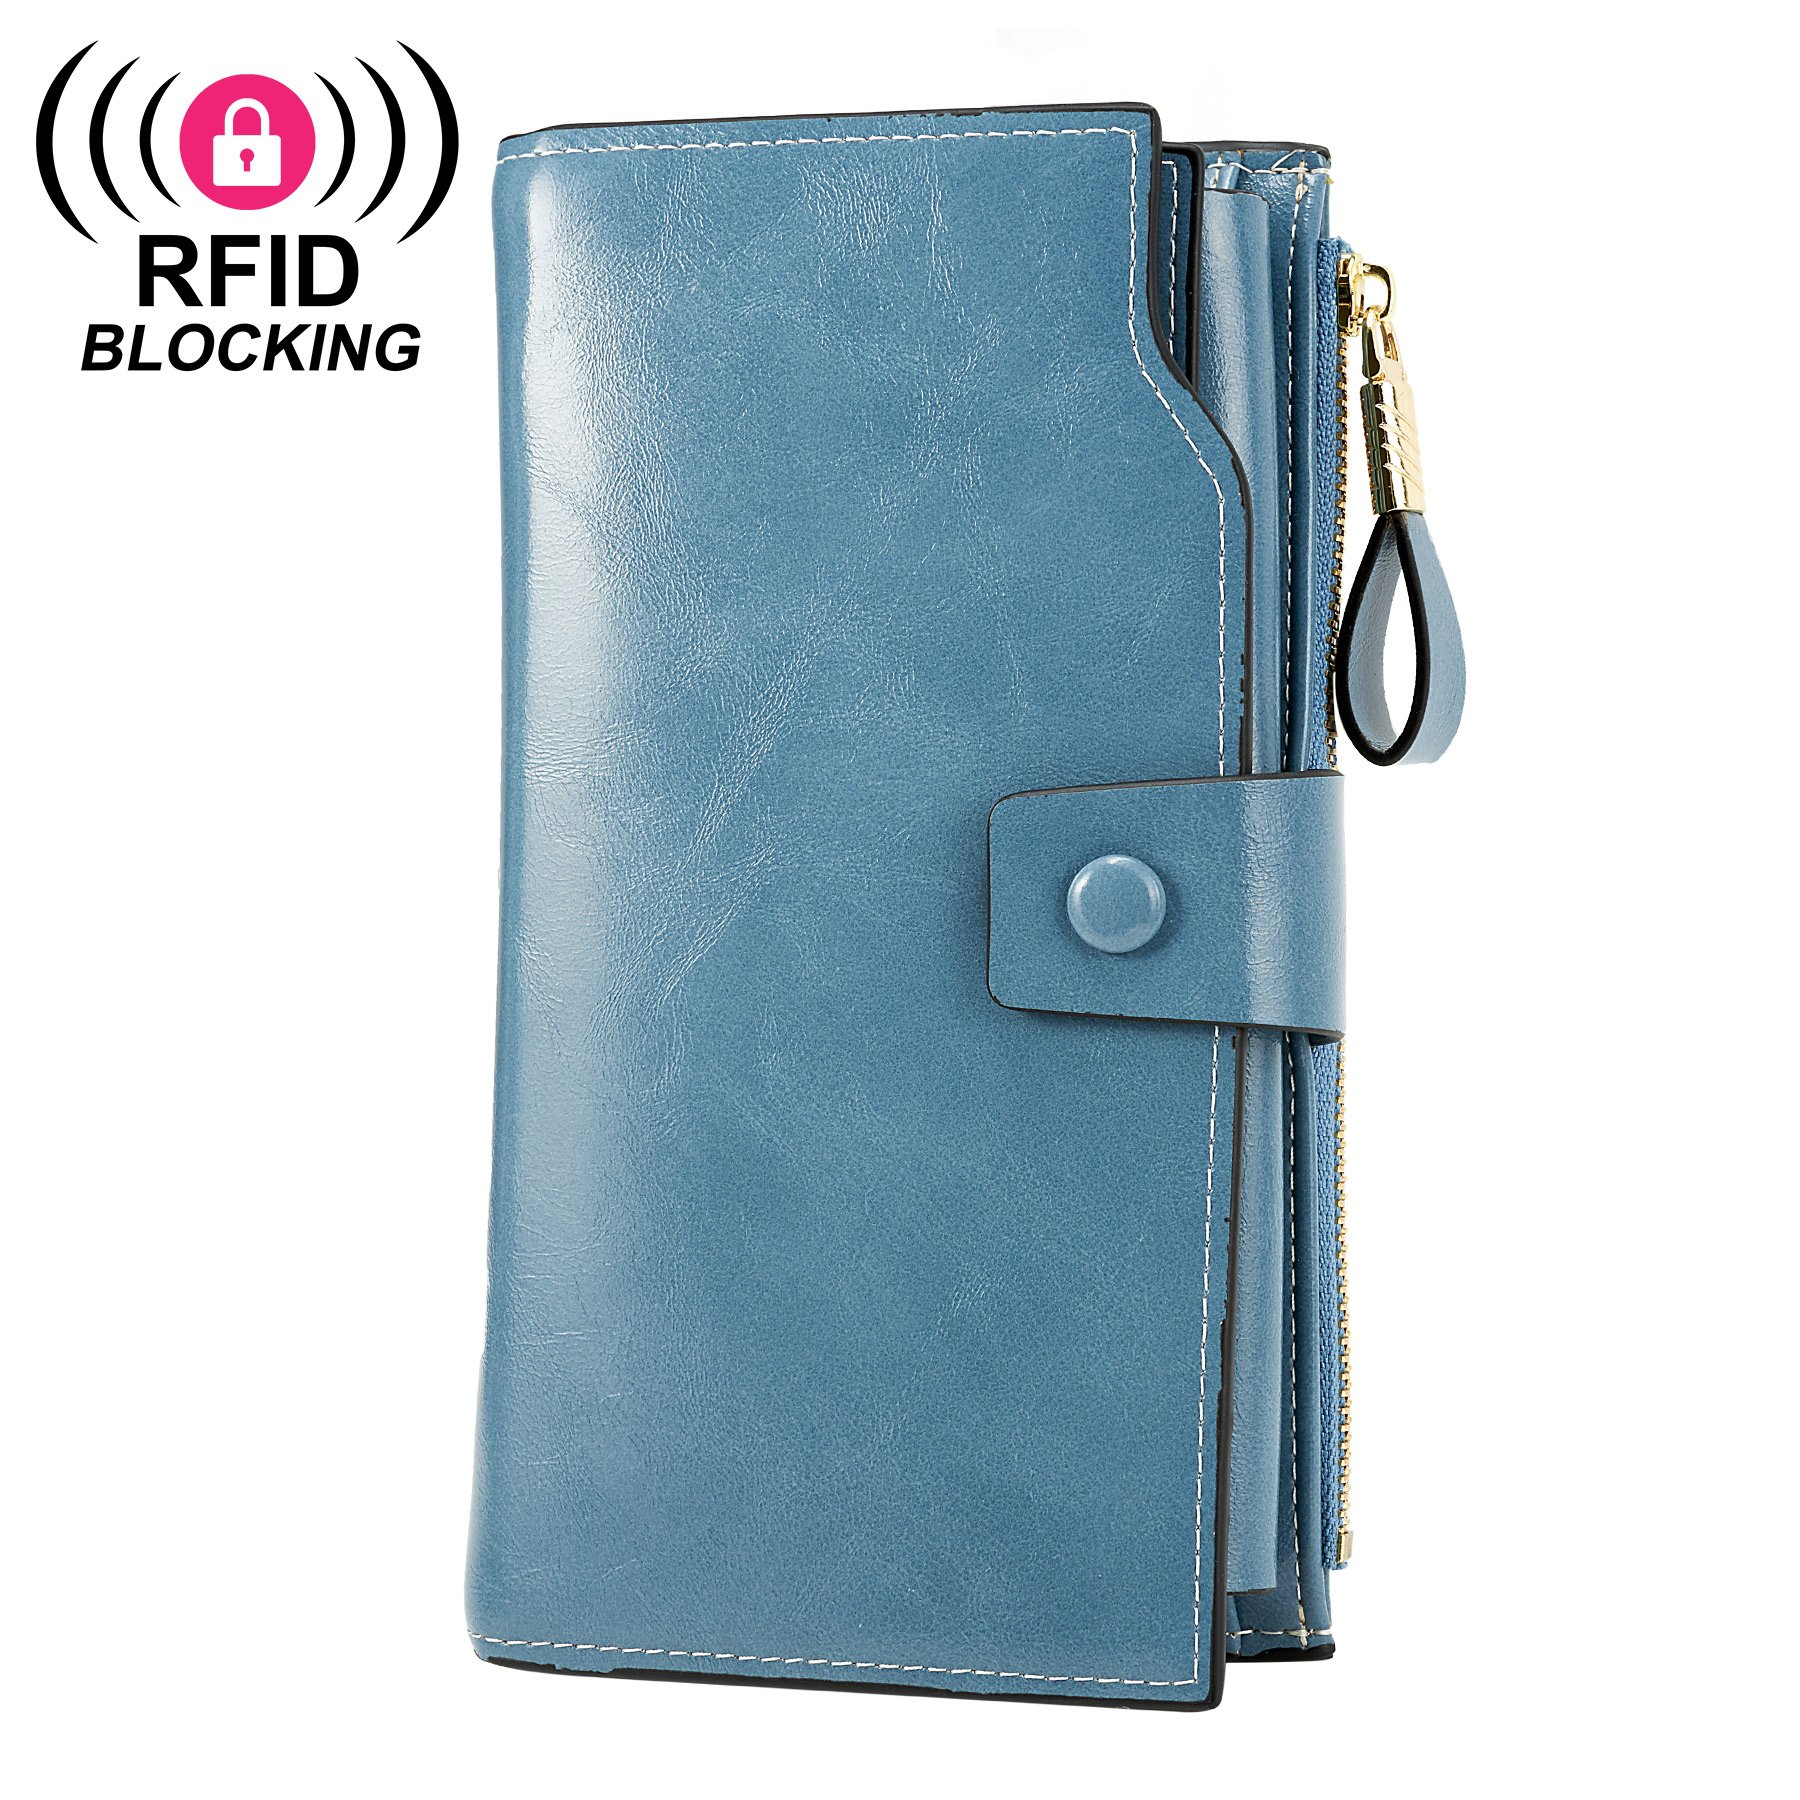 WOZEAH Women's RFID Blocking Large Capacity Luxury Wax PU Leather Clutch Wallet Card Holder Organizer Ladies Purse (blue)